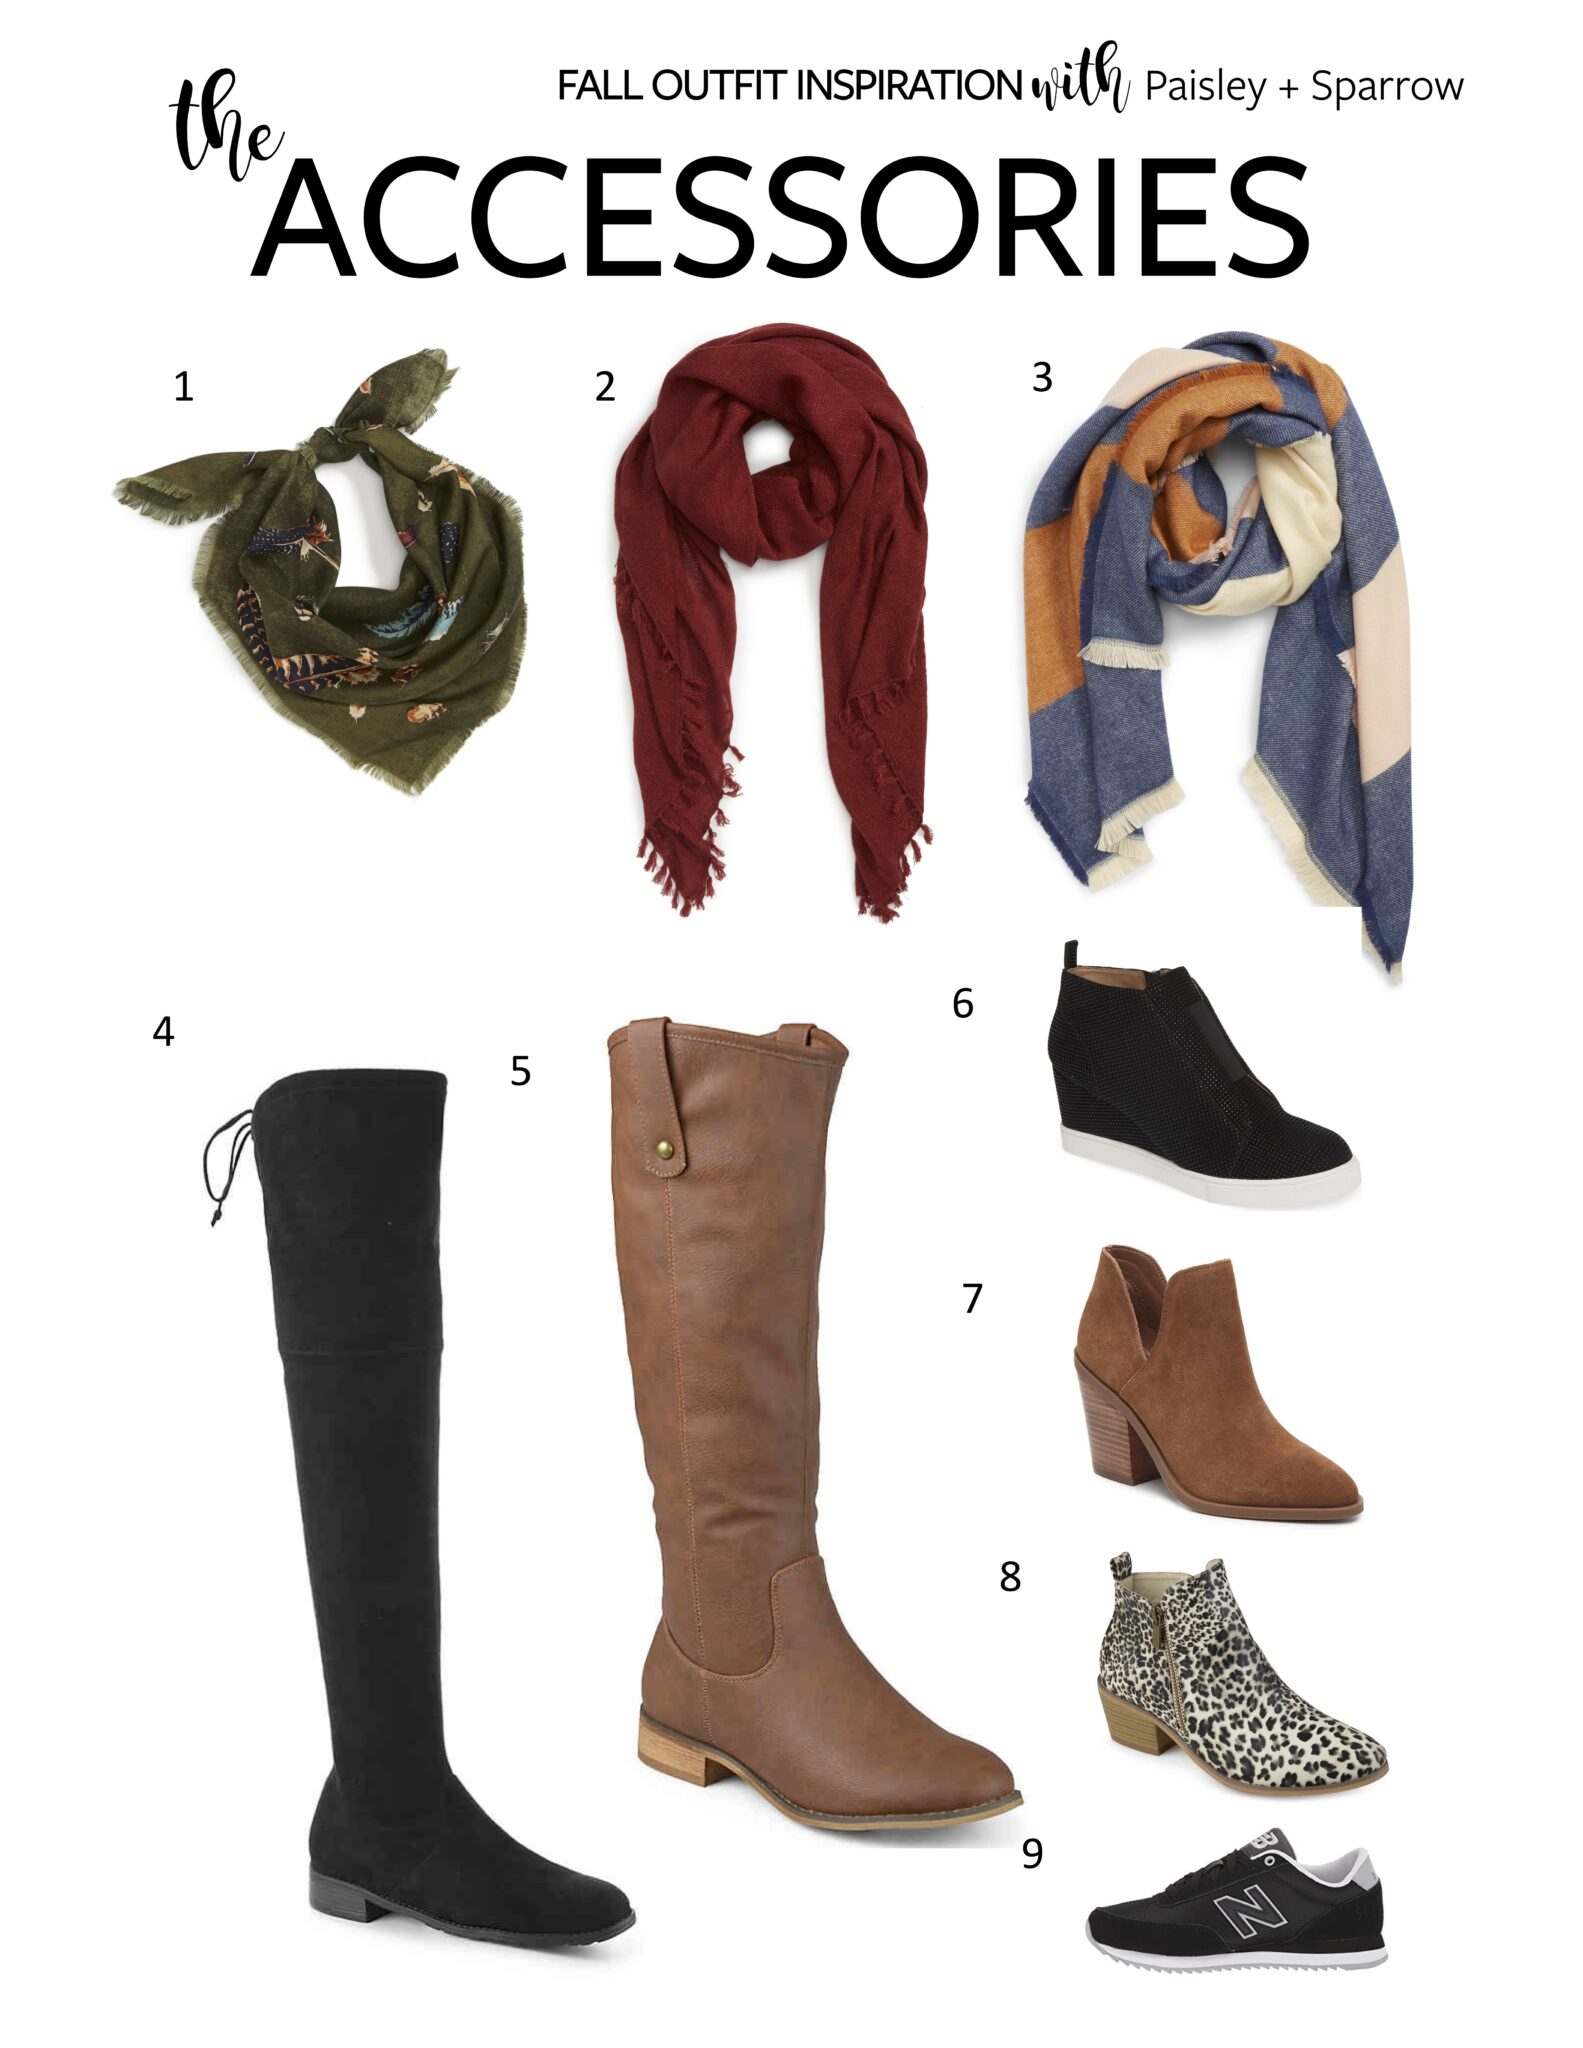 Paisley + Sparrow Fall Outfit Inspiration - Accessories